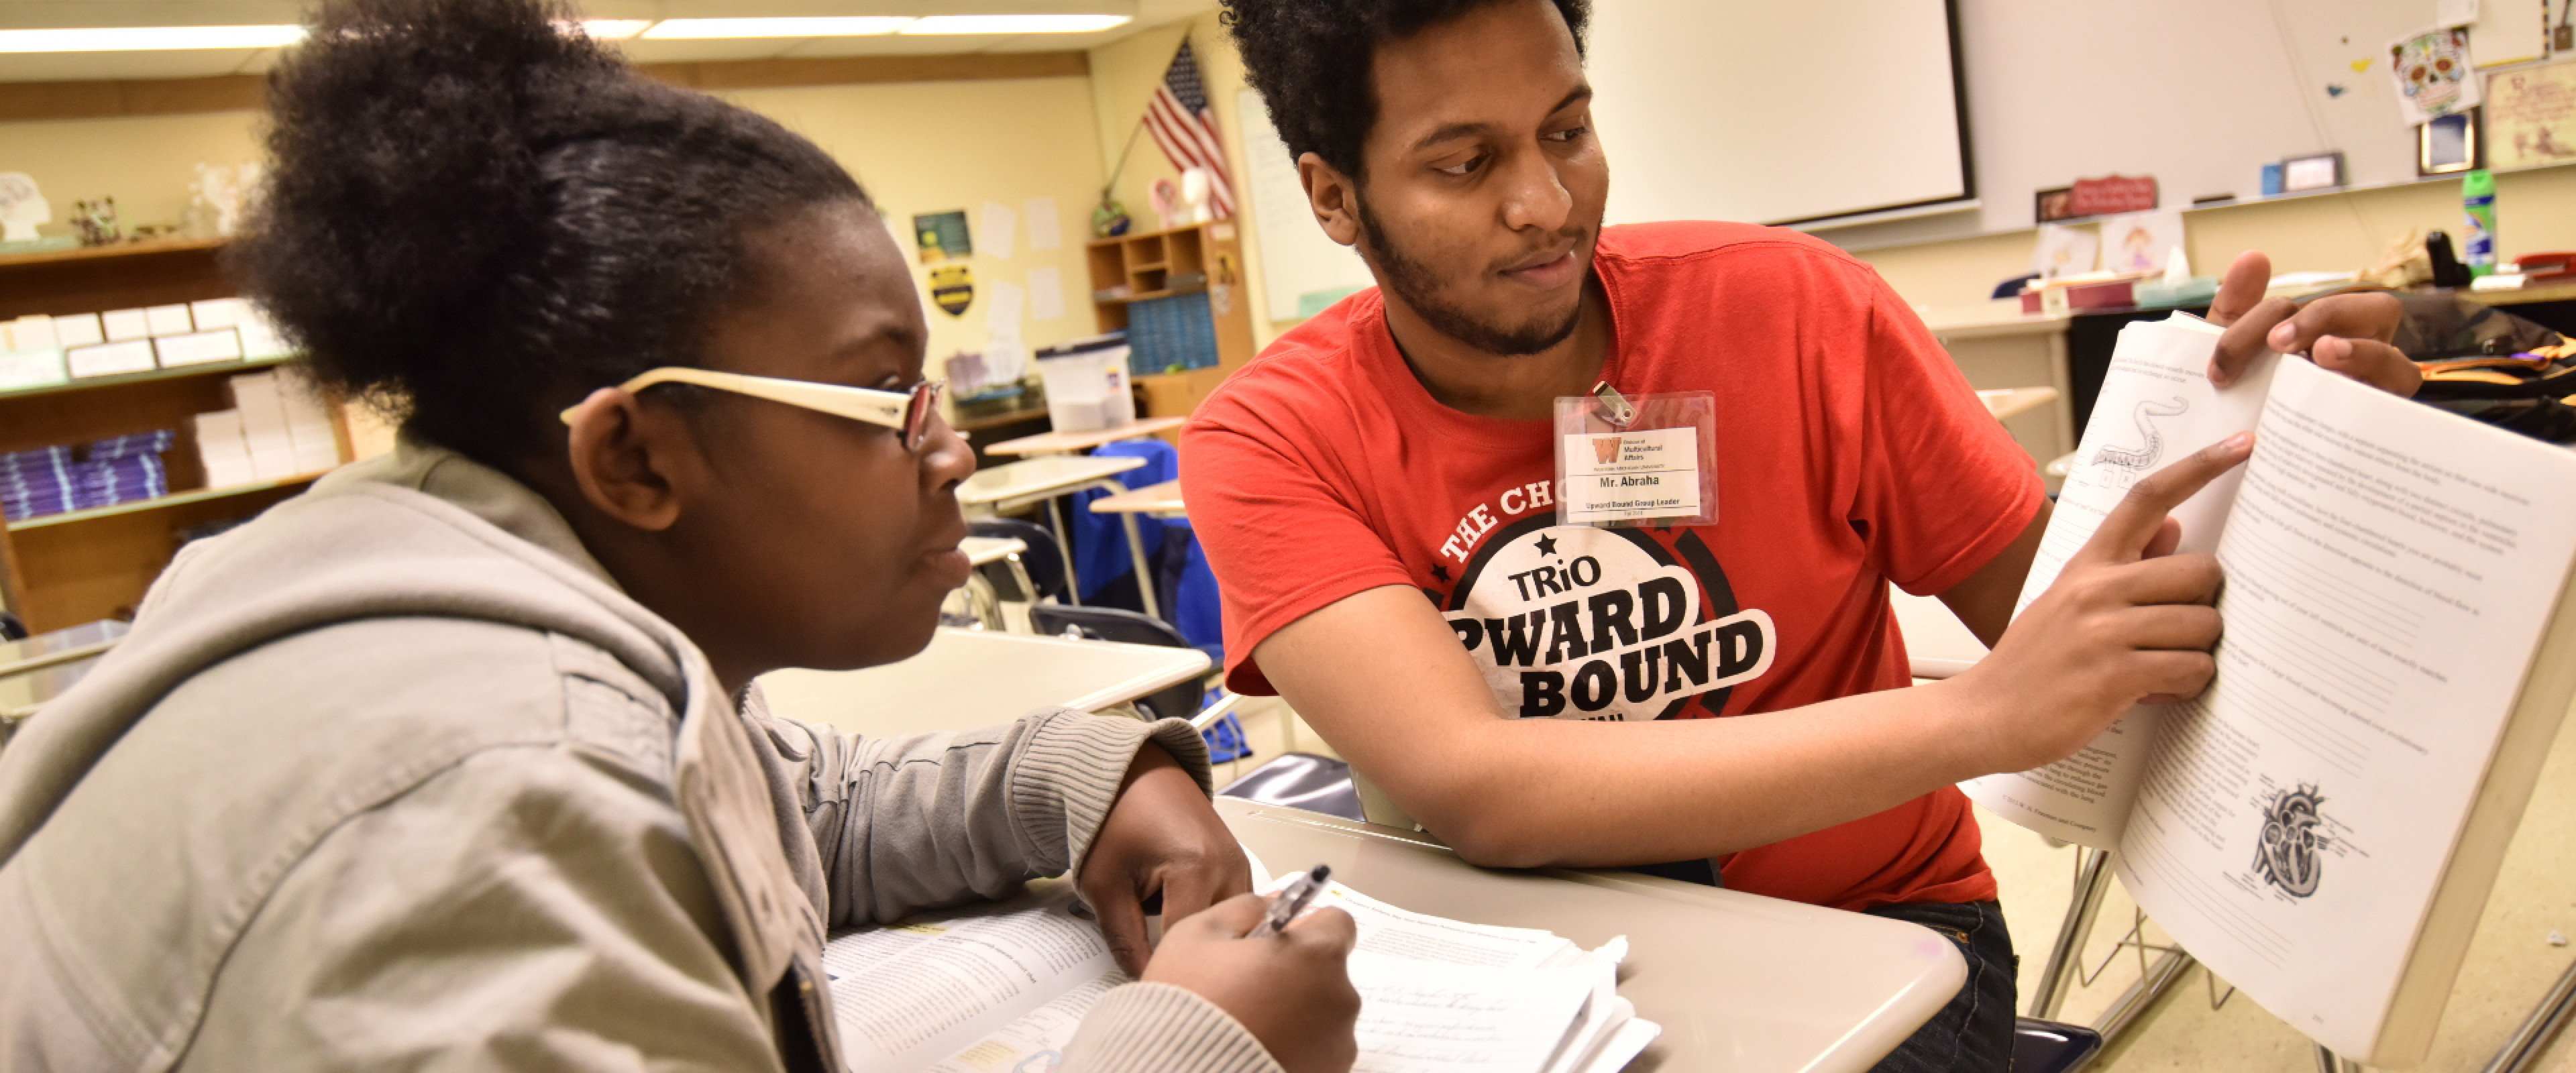 Upward Bound student being helped by a tutor.